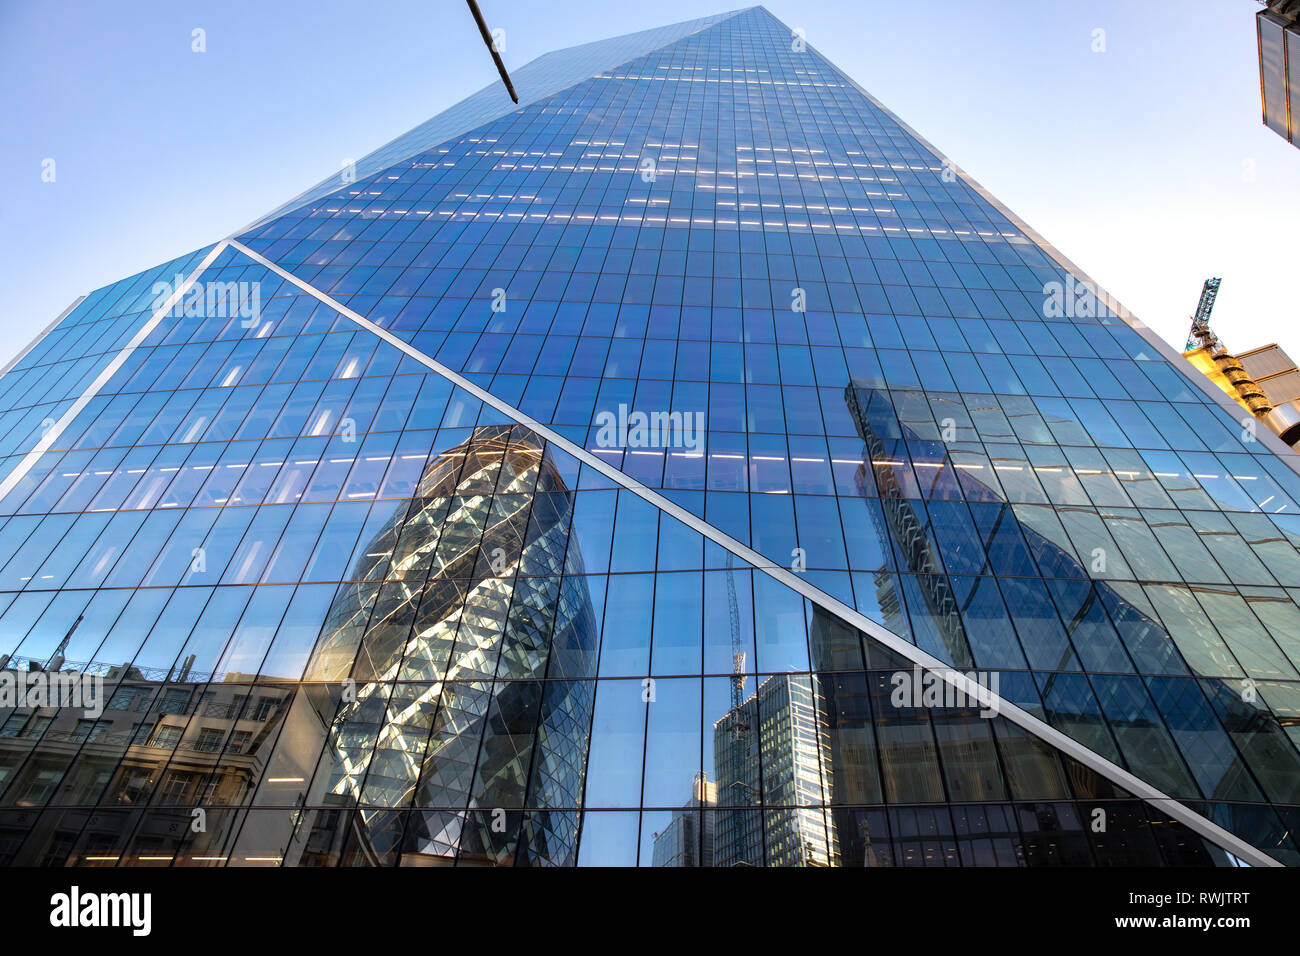 The Scalpel building in London - Stock Image